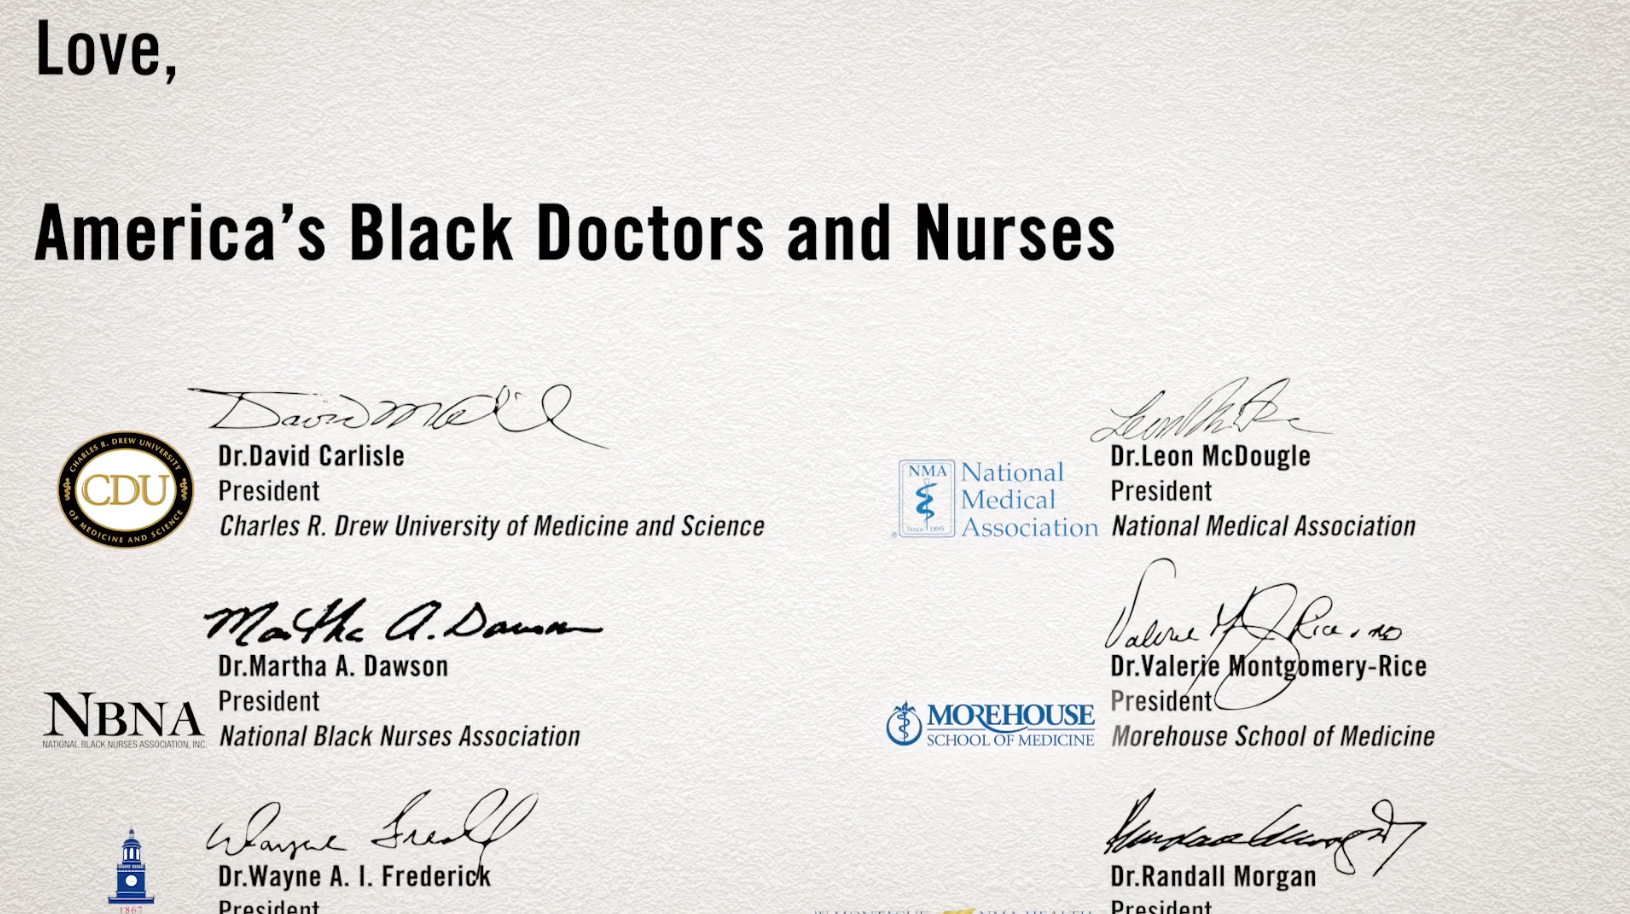 A Love Letter to Black America, from America's Black Doctors and Nurses